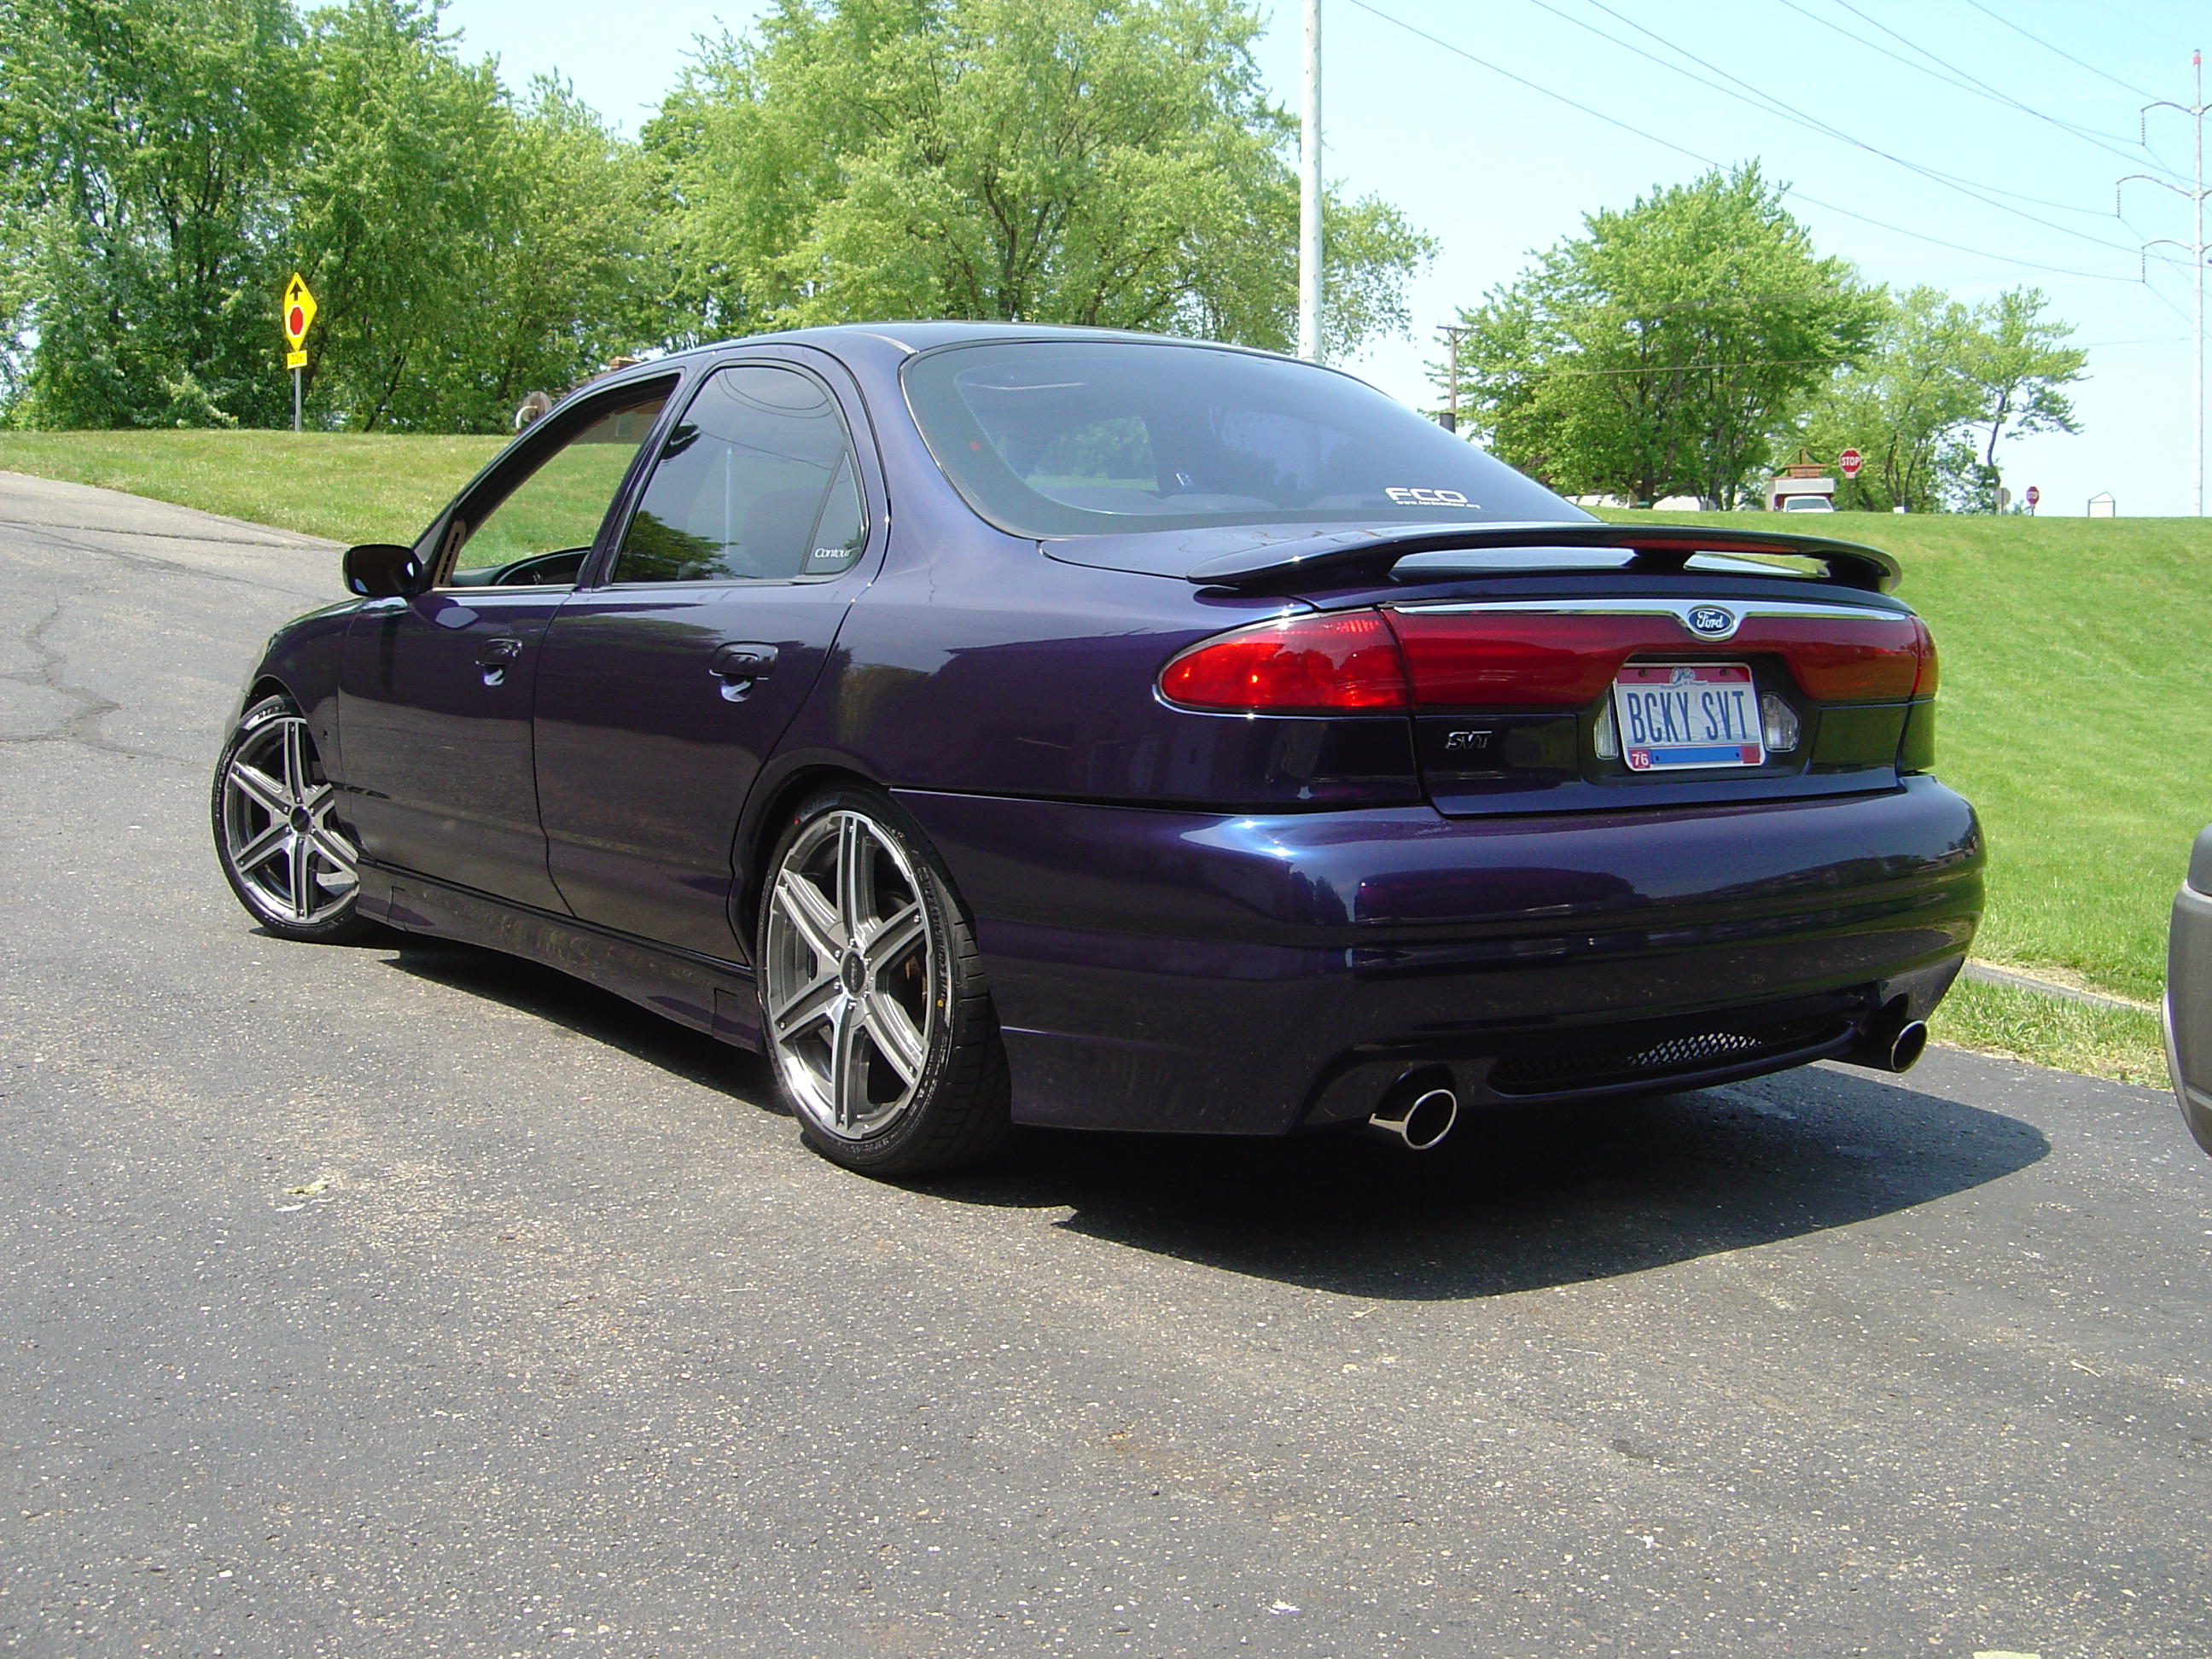 New pics of my SVT paint finished and new wheels! - Readers Rides ...